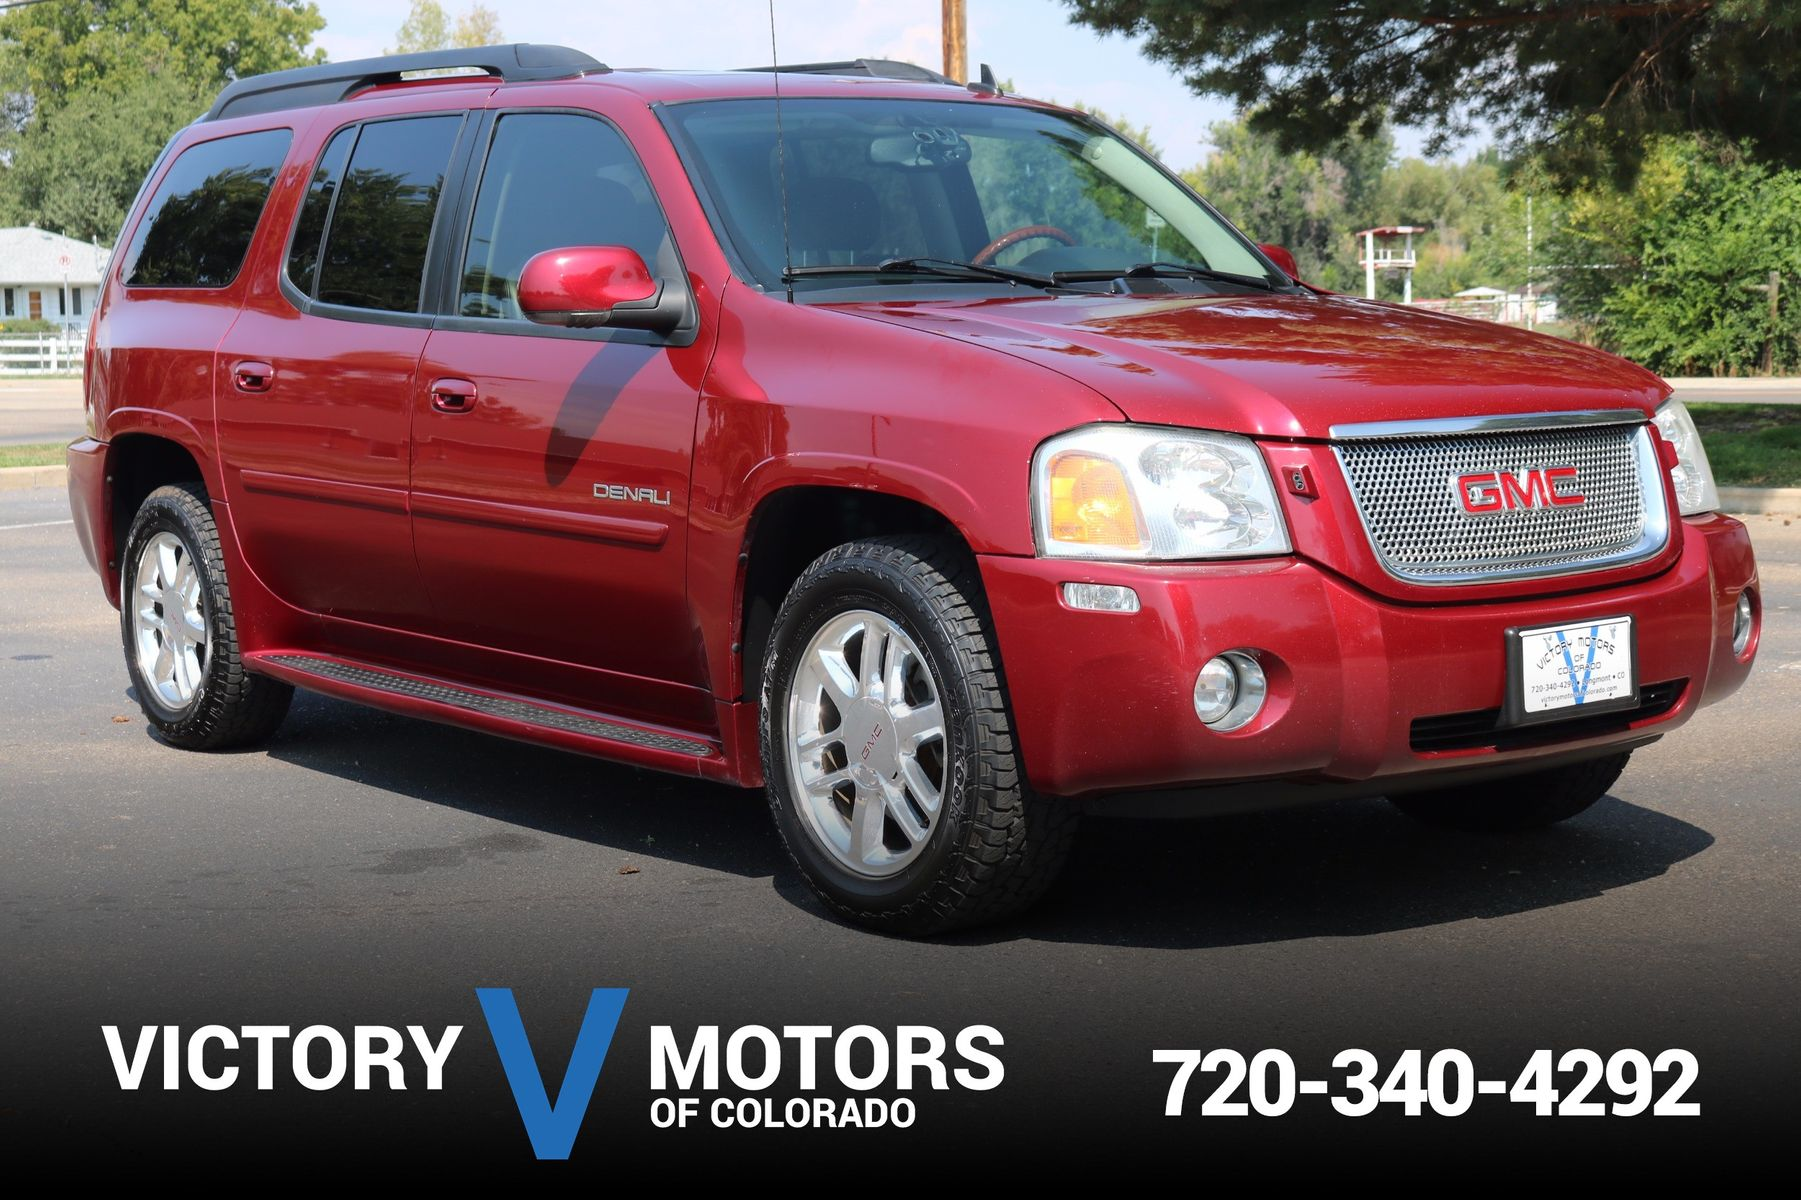 2006 Gmc Envoy Xl Denali Victory Motors Of Colorado